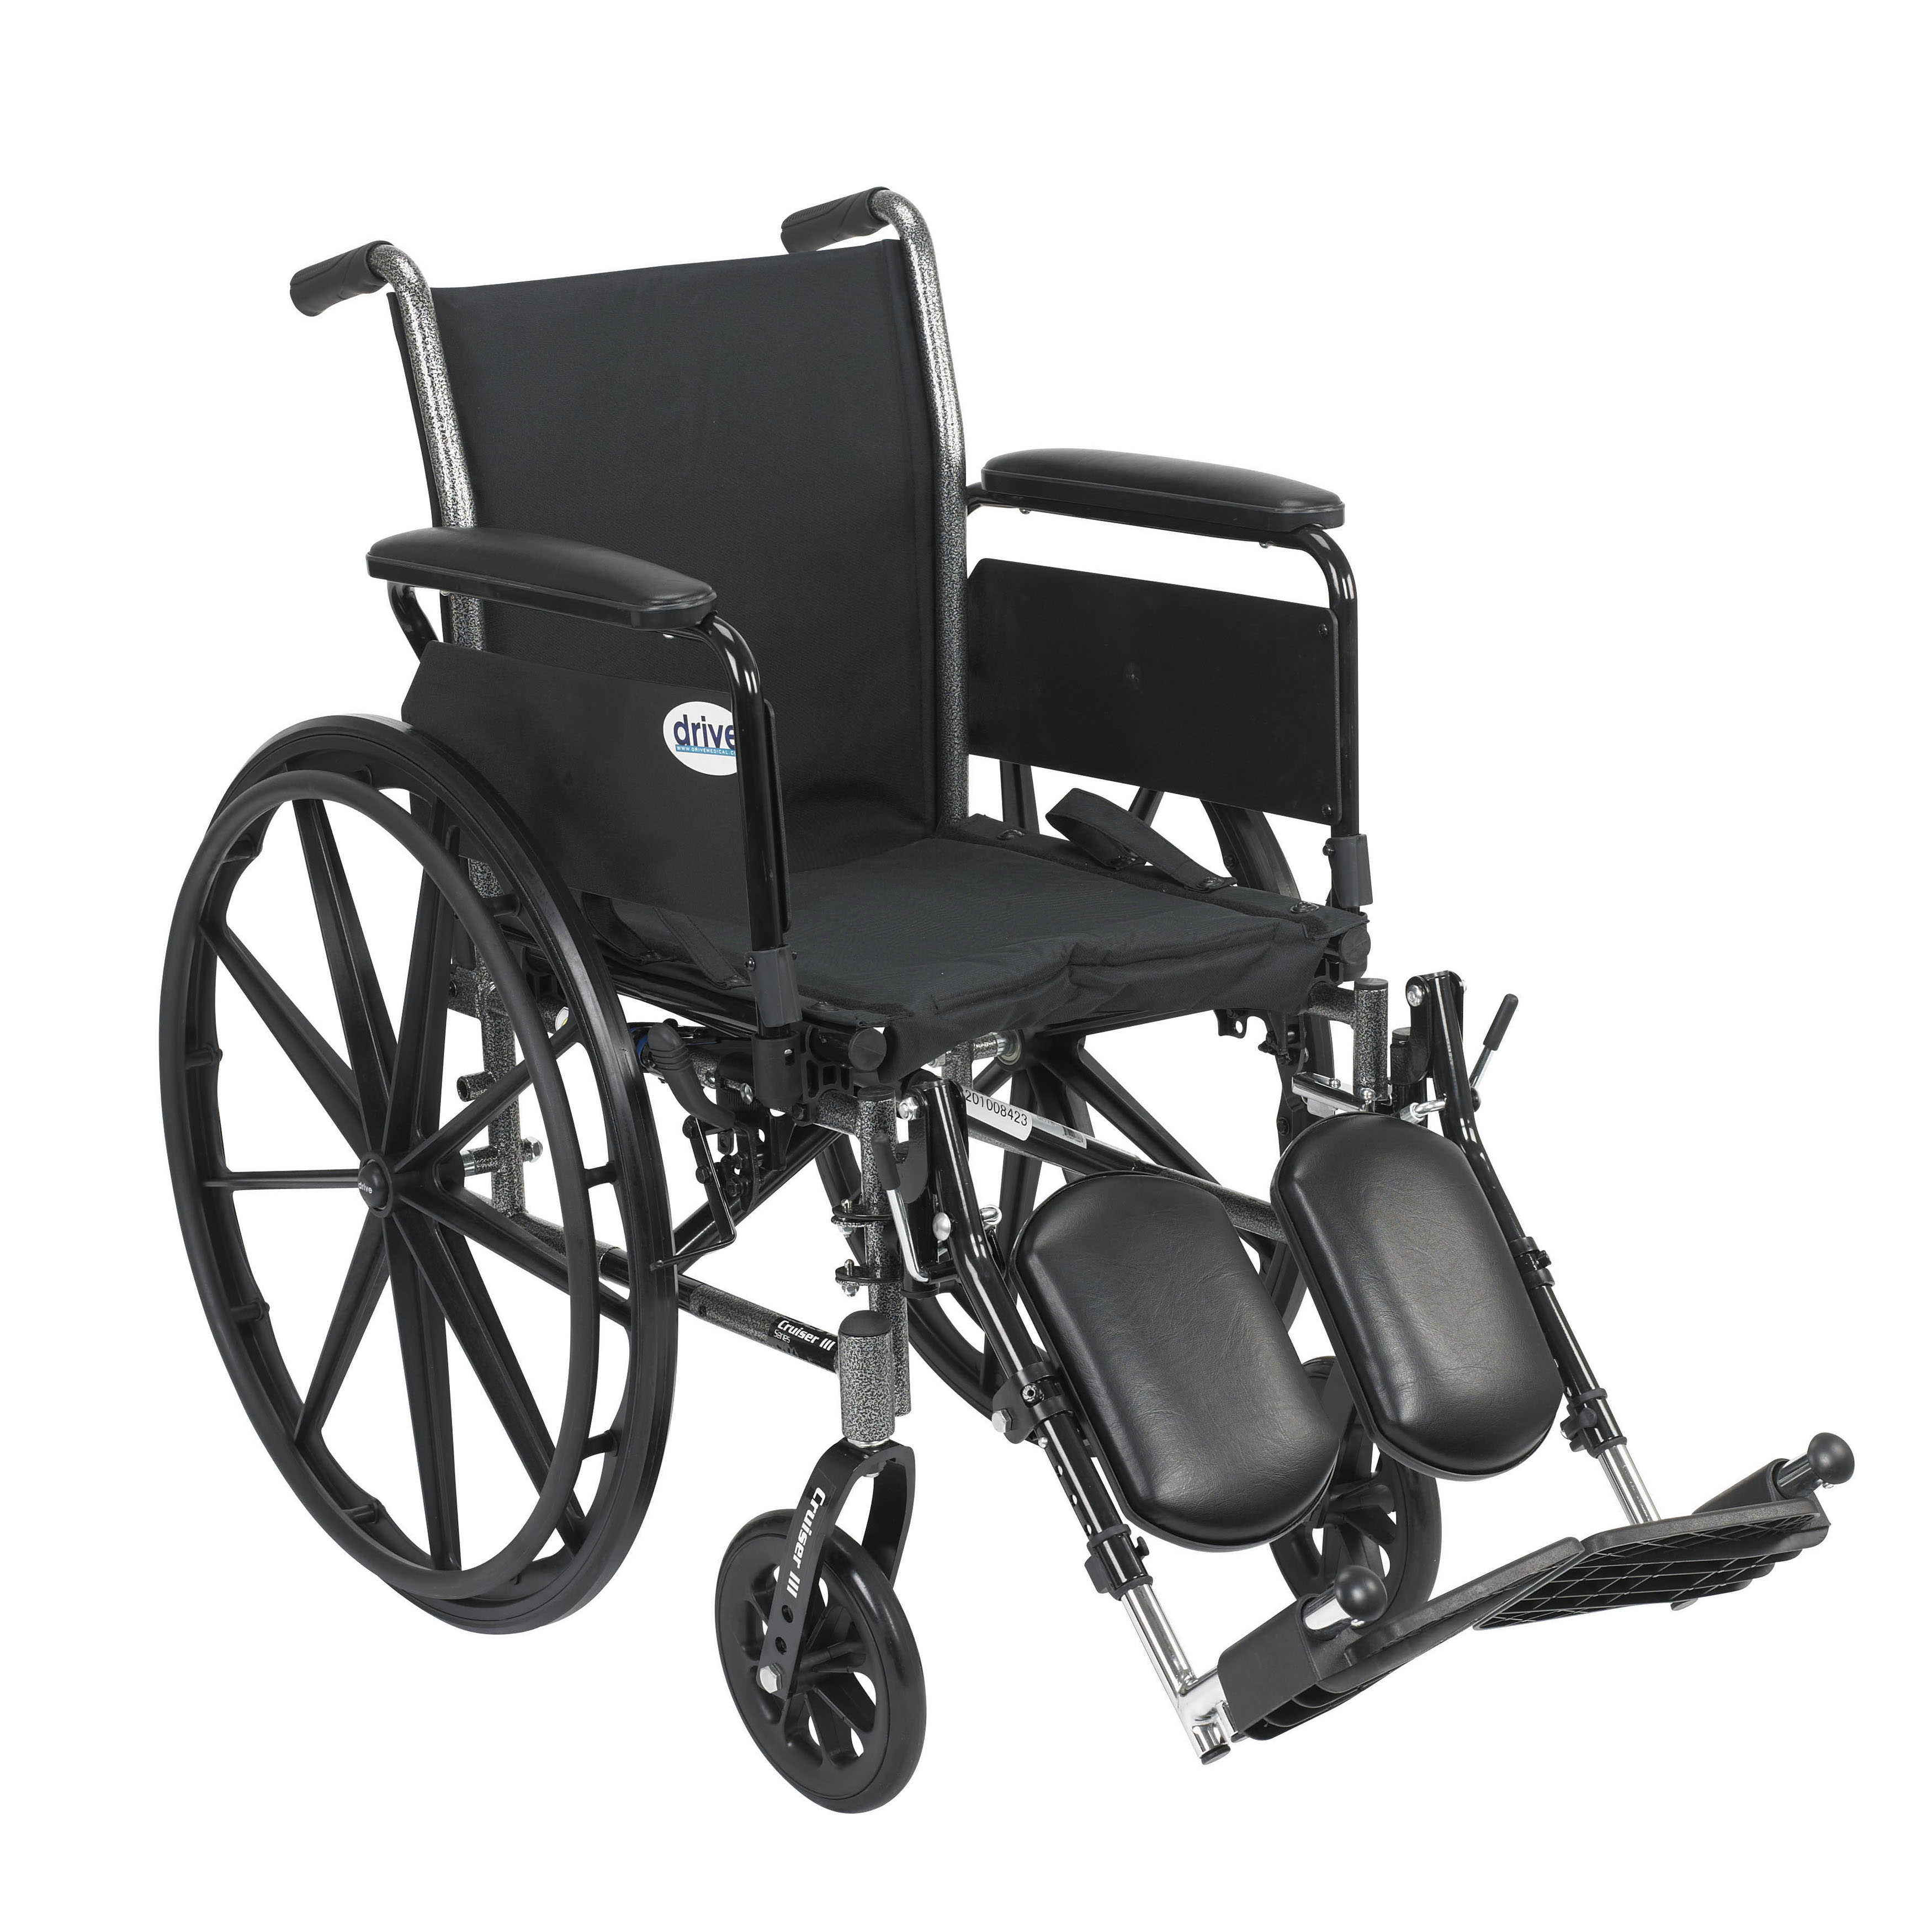 Cruiser III Light Weight Wheelchair with Flip Back Arm Styles and